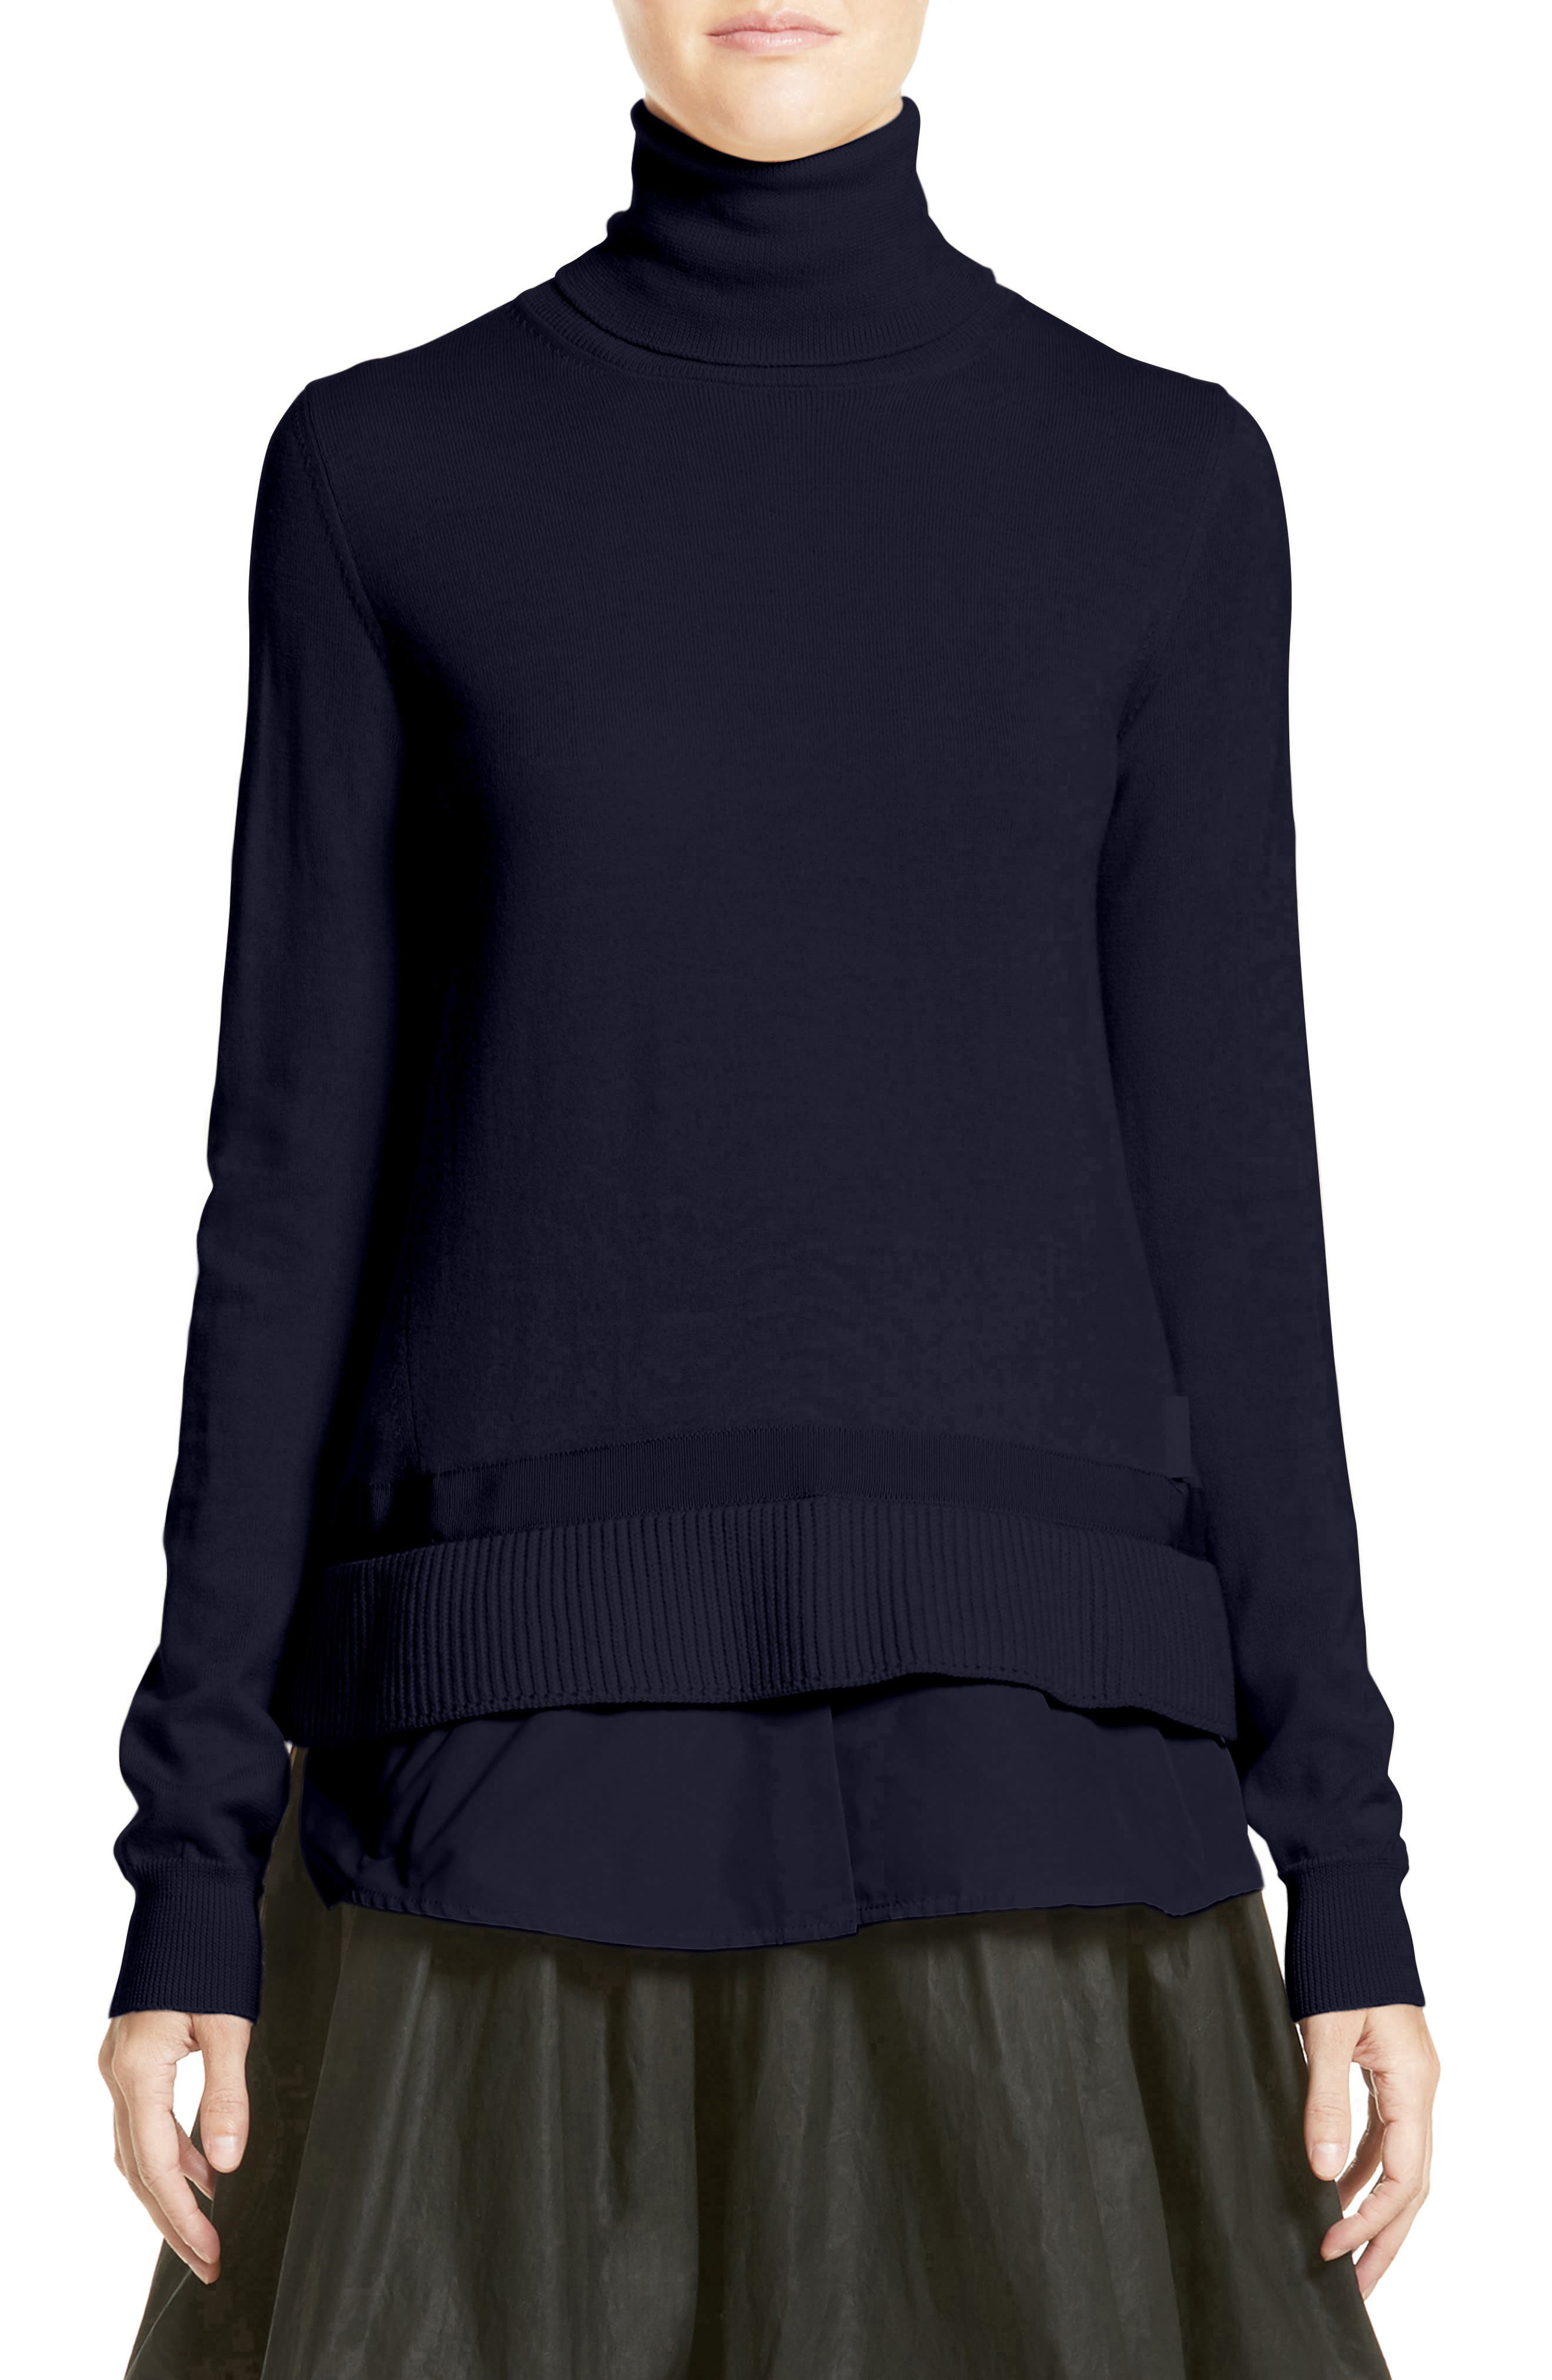 Ciclista Tricot Knit Wool Turtleneck Sweater,                         Main,                         color, Navy